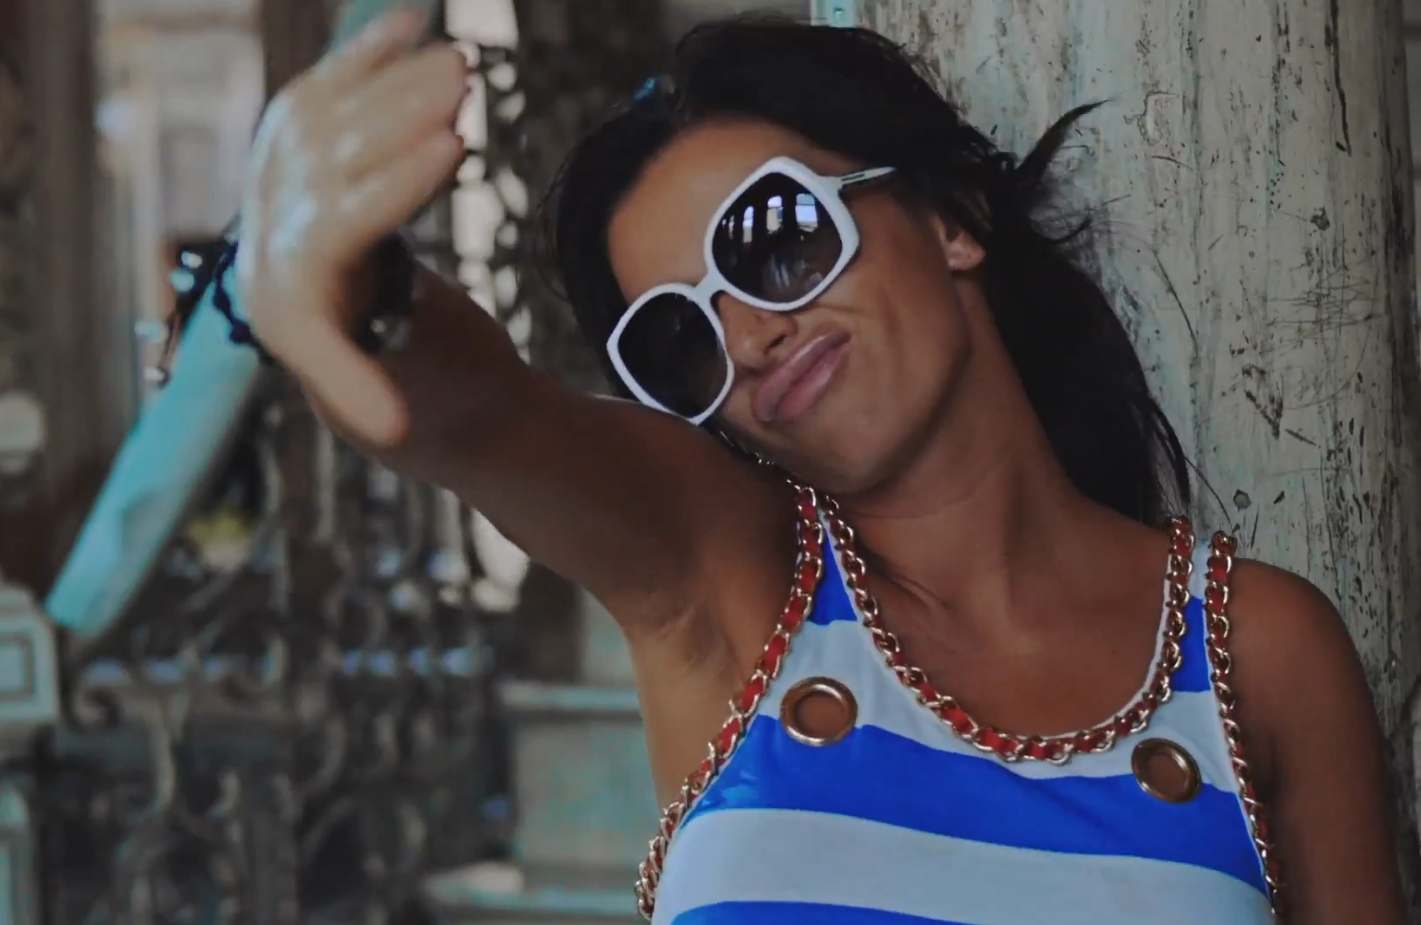 Julia Volkova – Didn't Wanna Do It